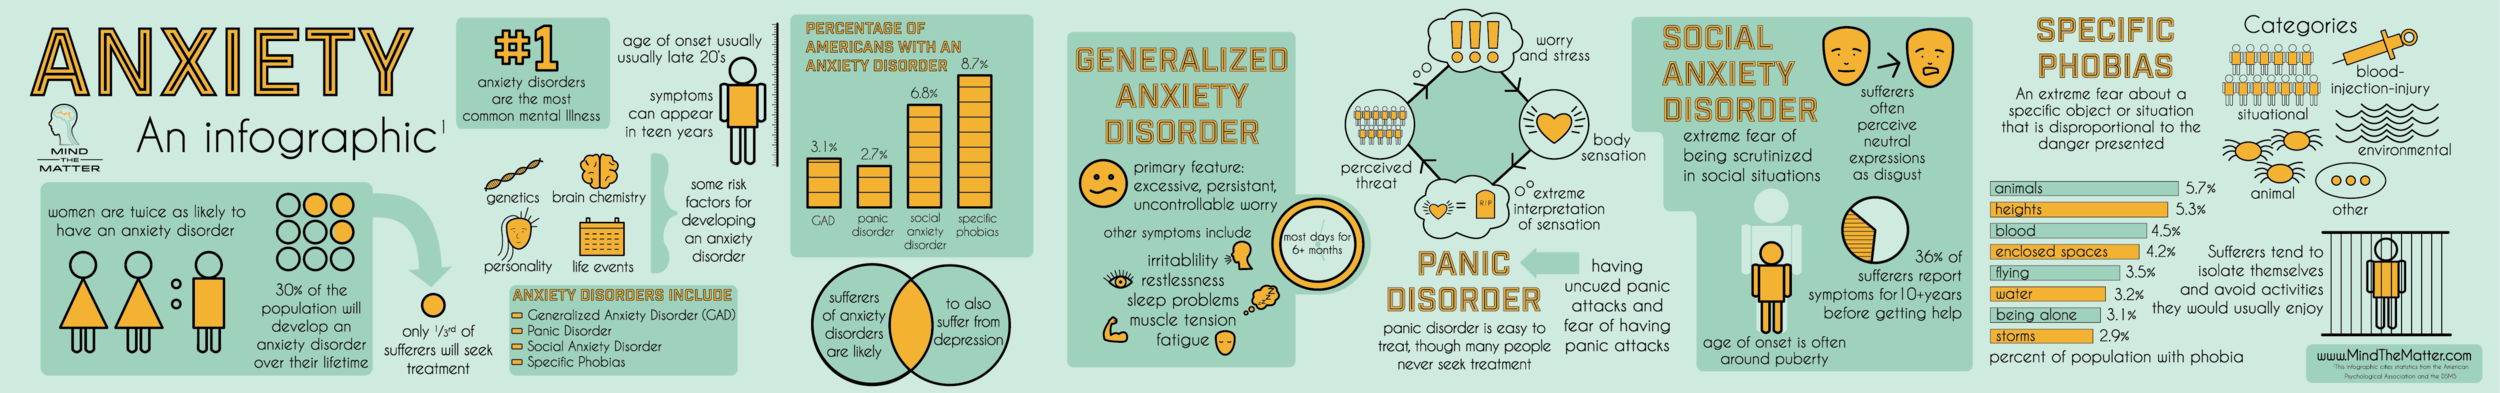 anxiety infographic print_2019-01.png